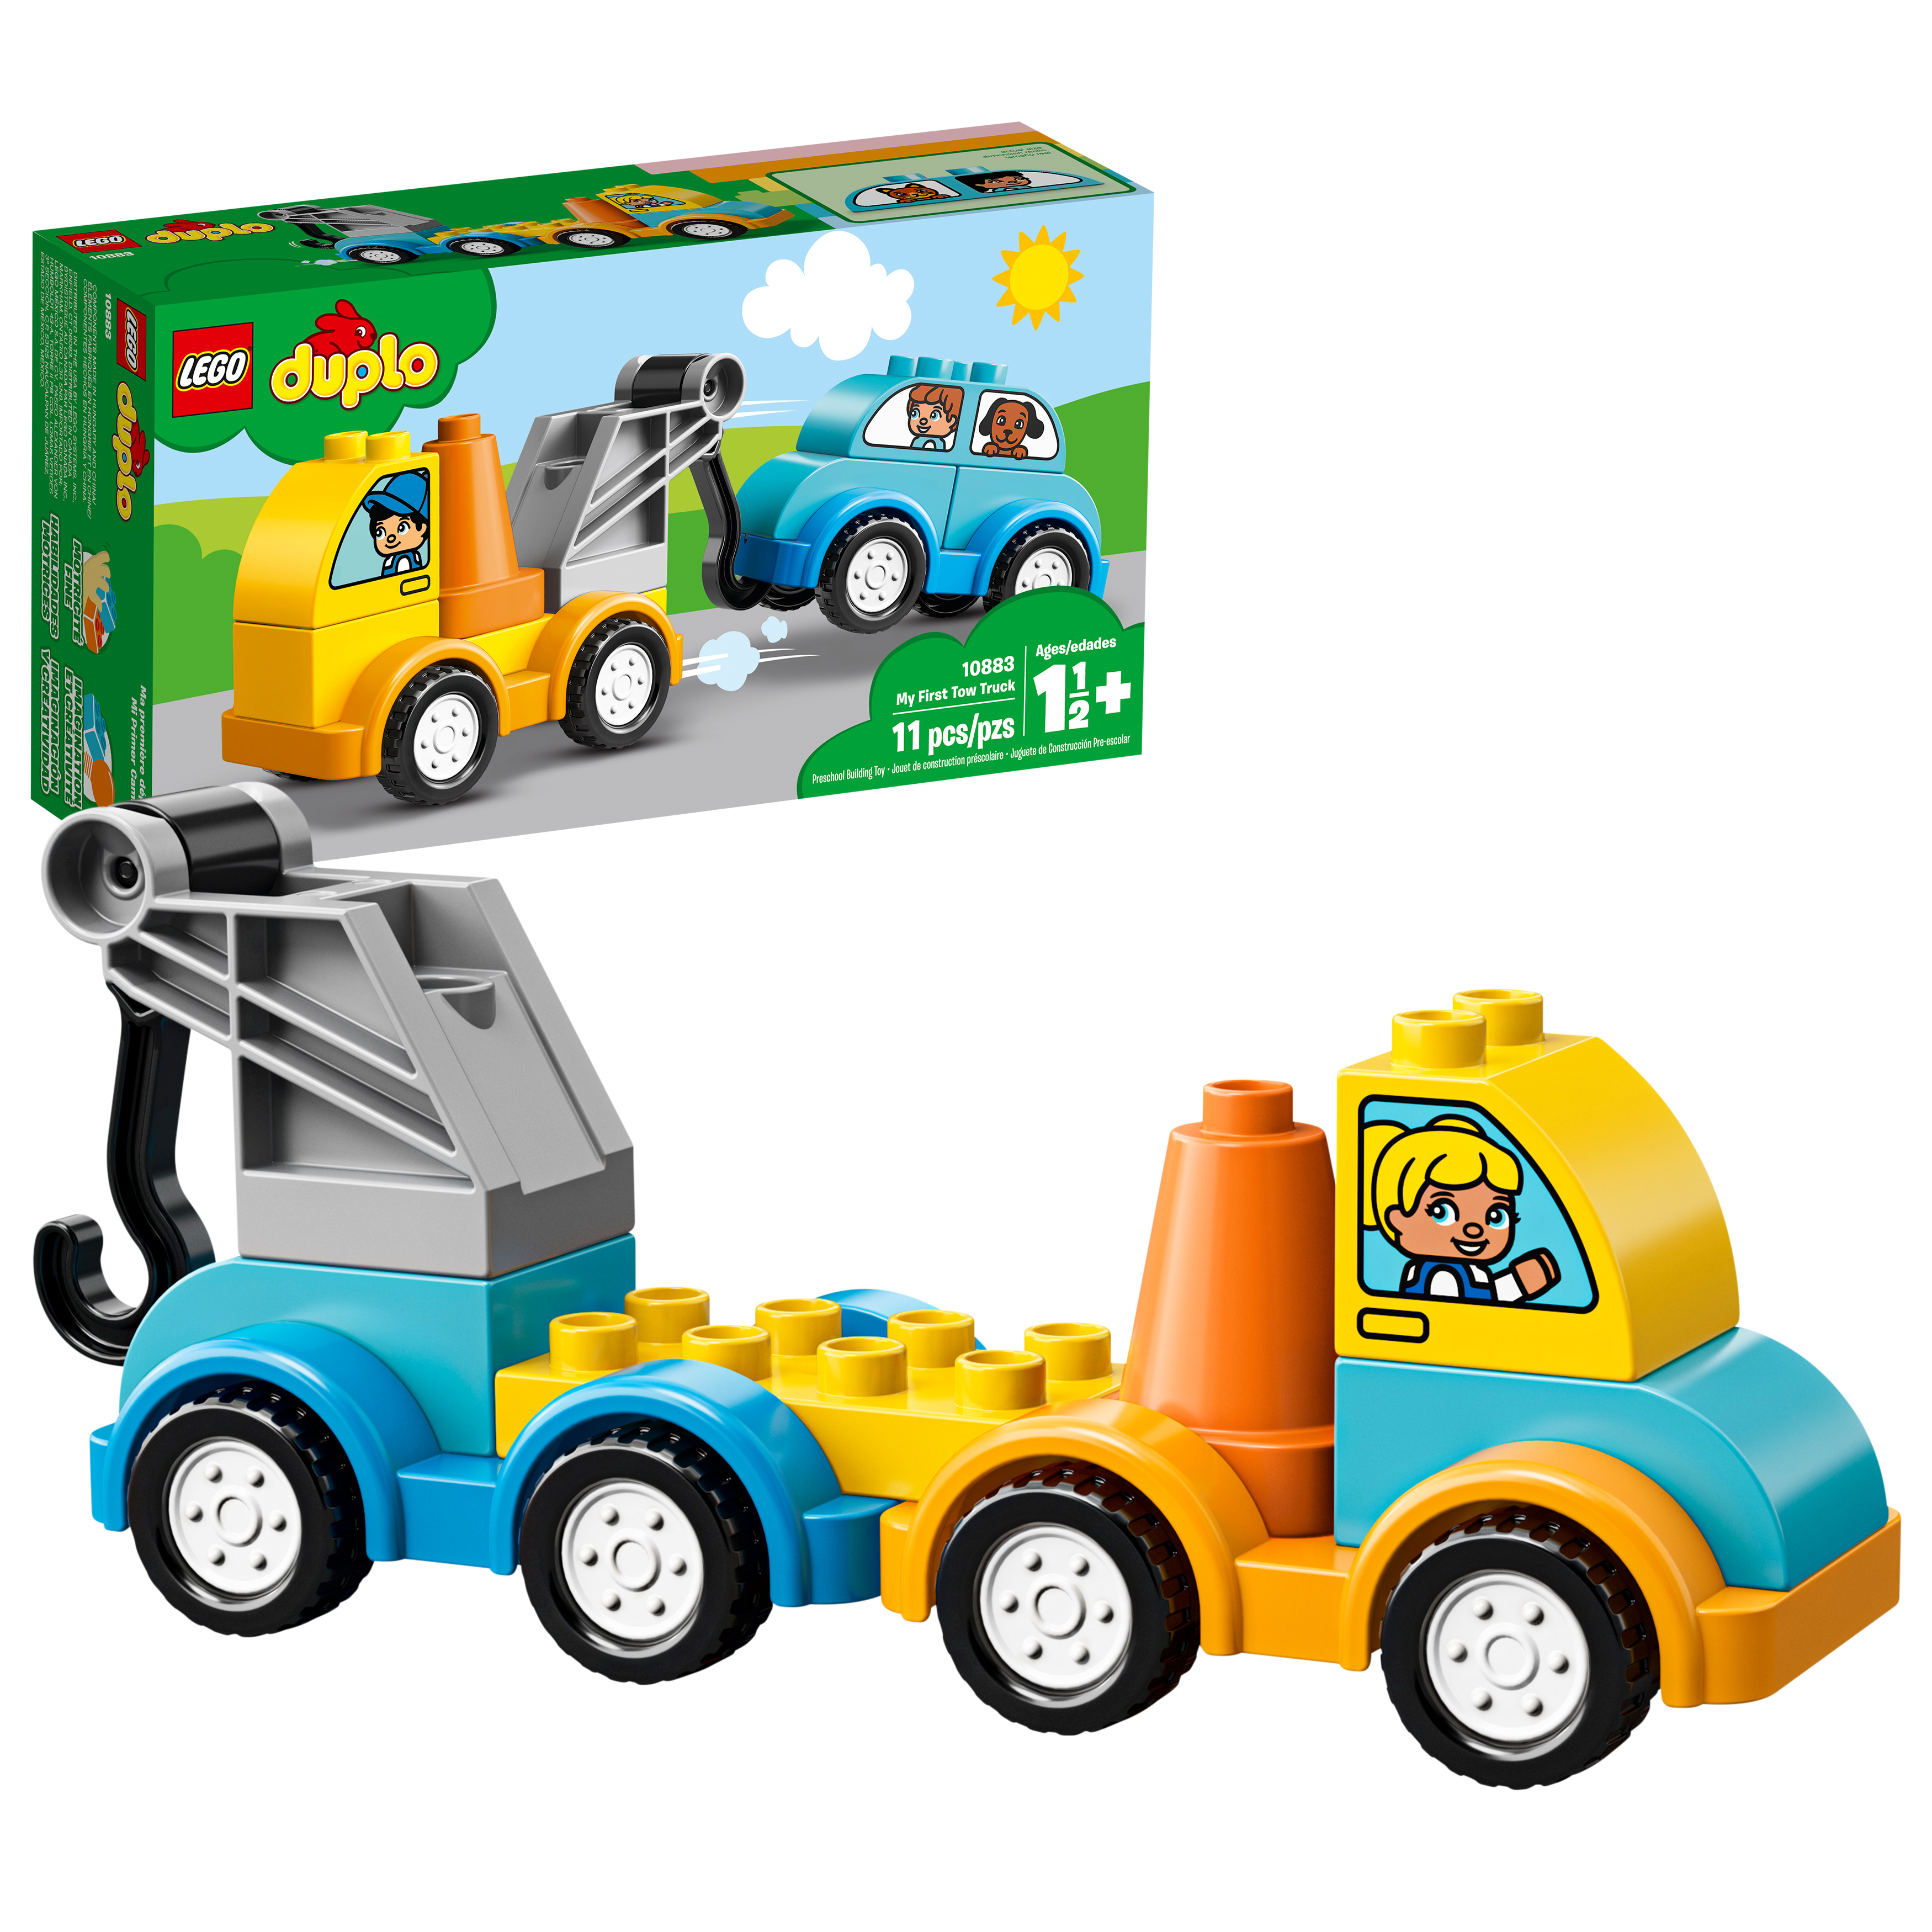 LEGO DUPLO My First Tow Truck 10883 Preschool Building Set